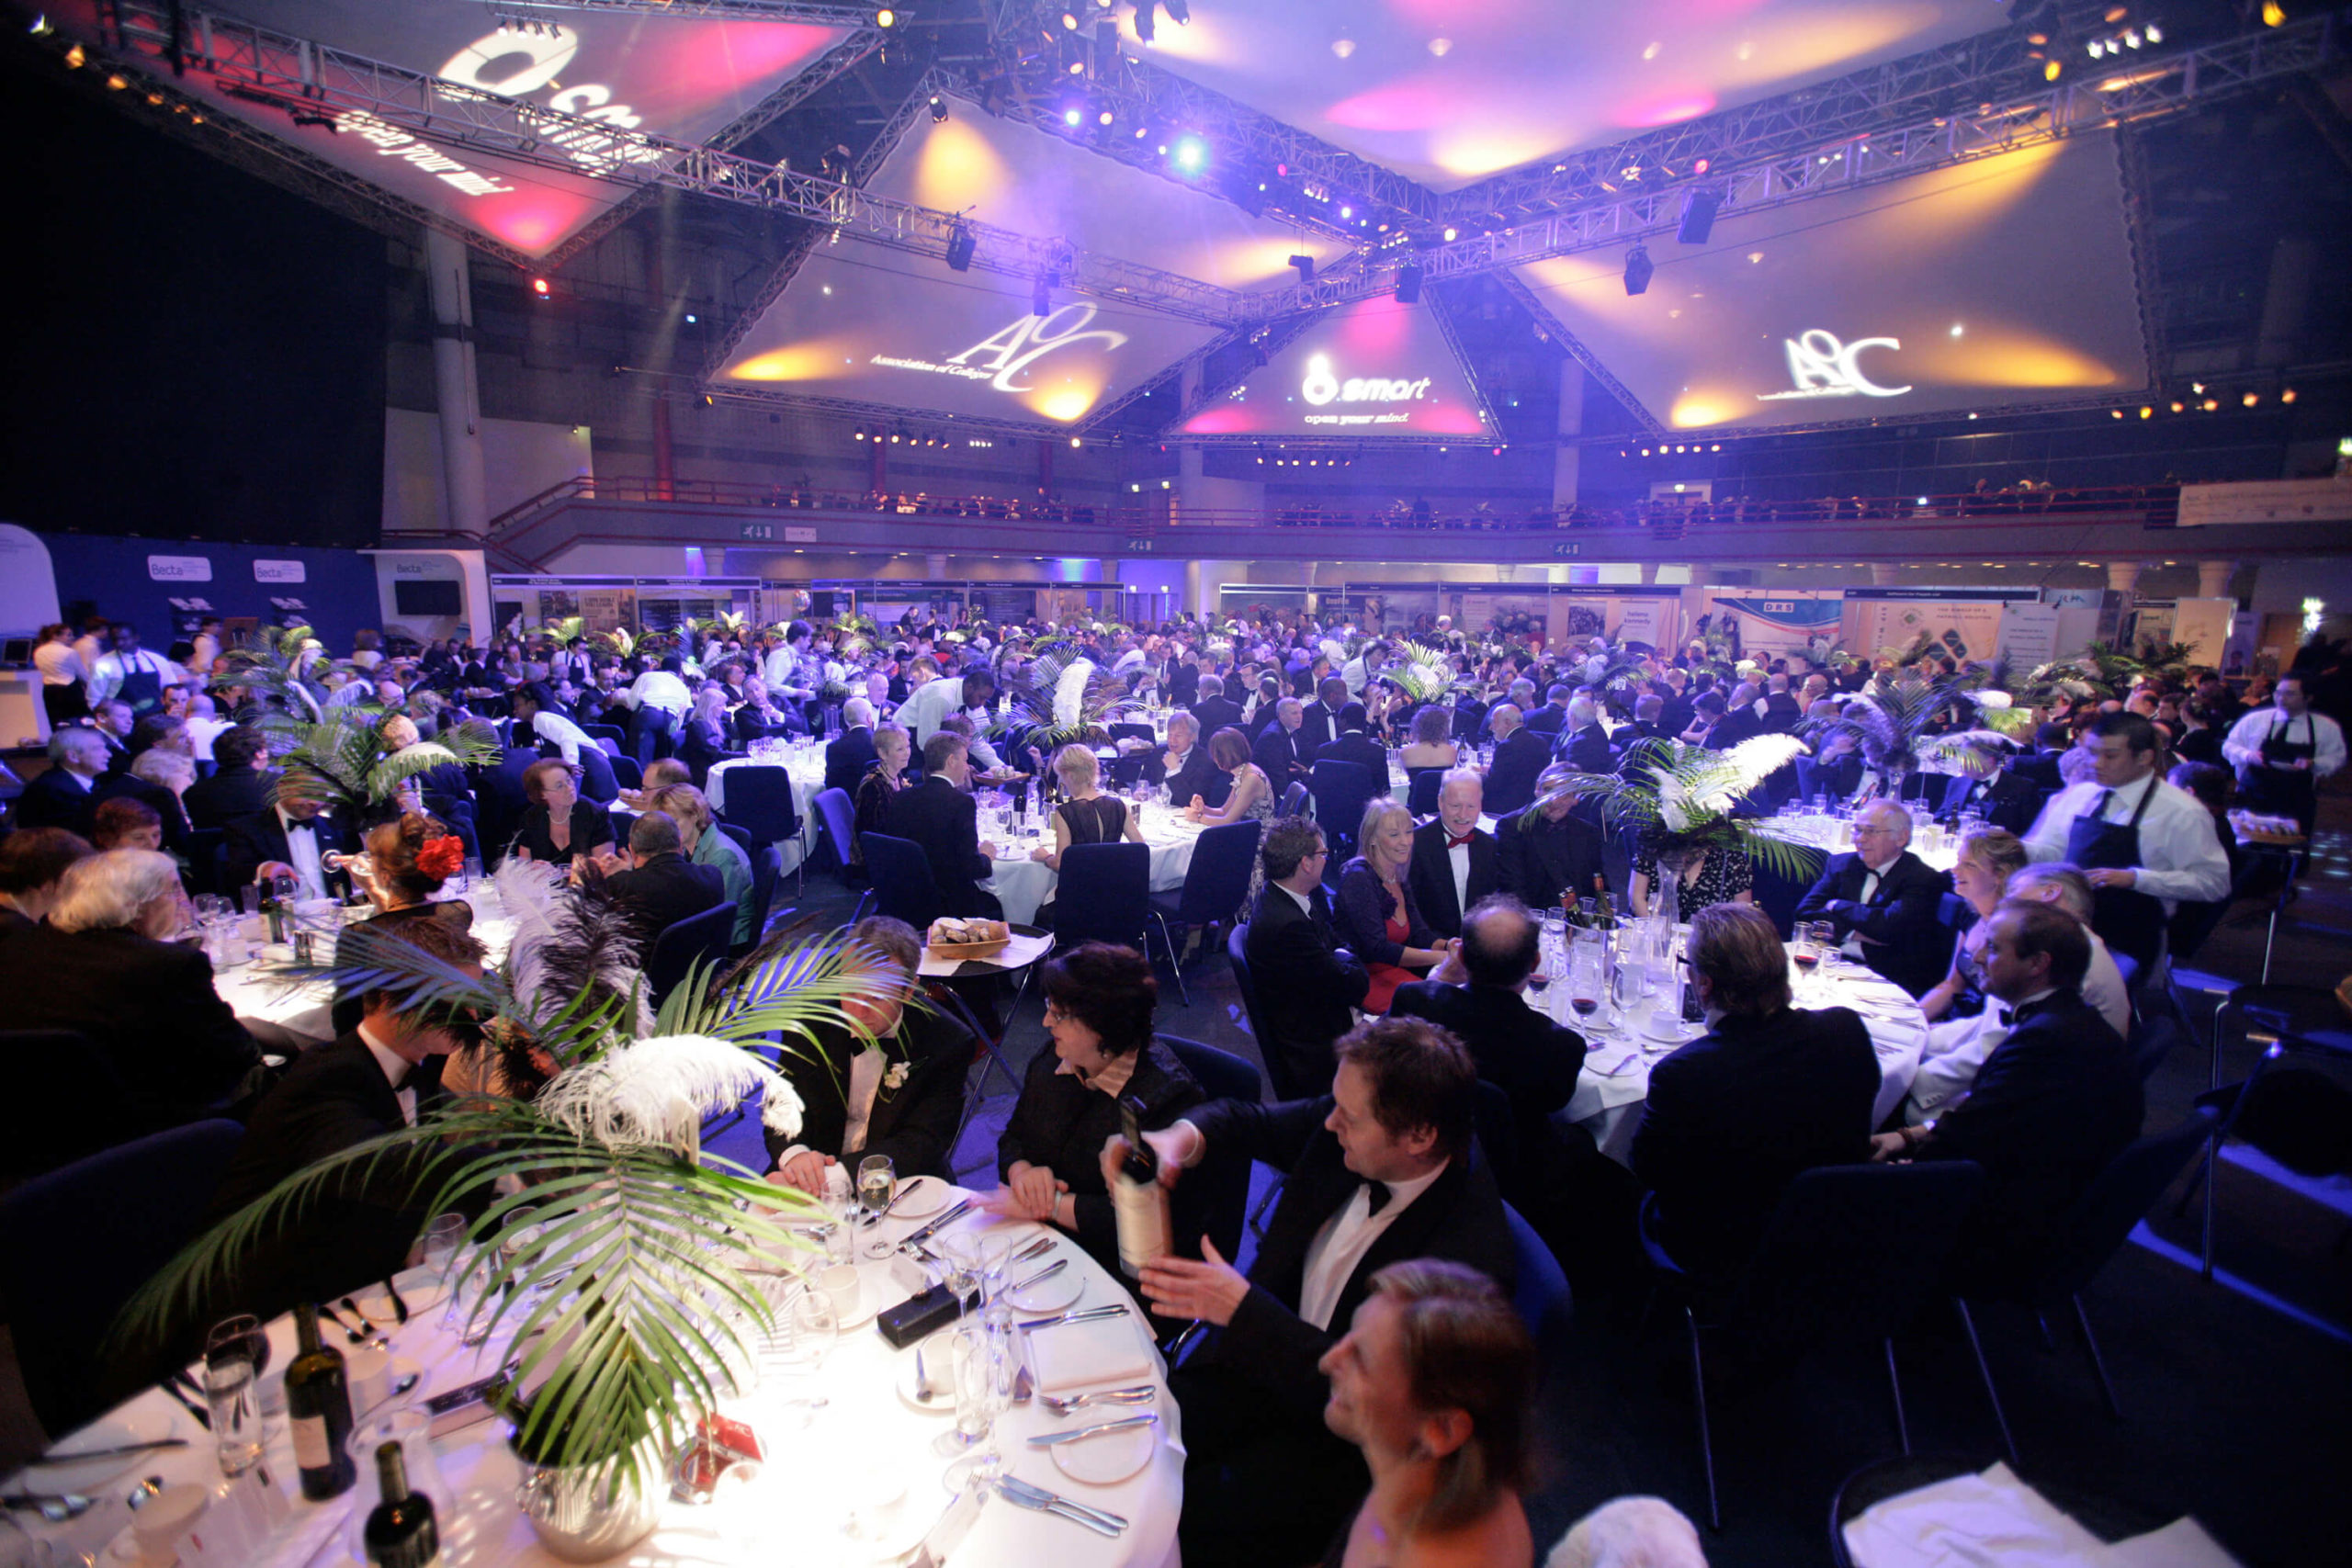 Association of Colleges gala dinner